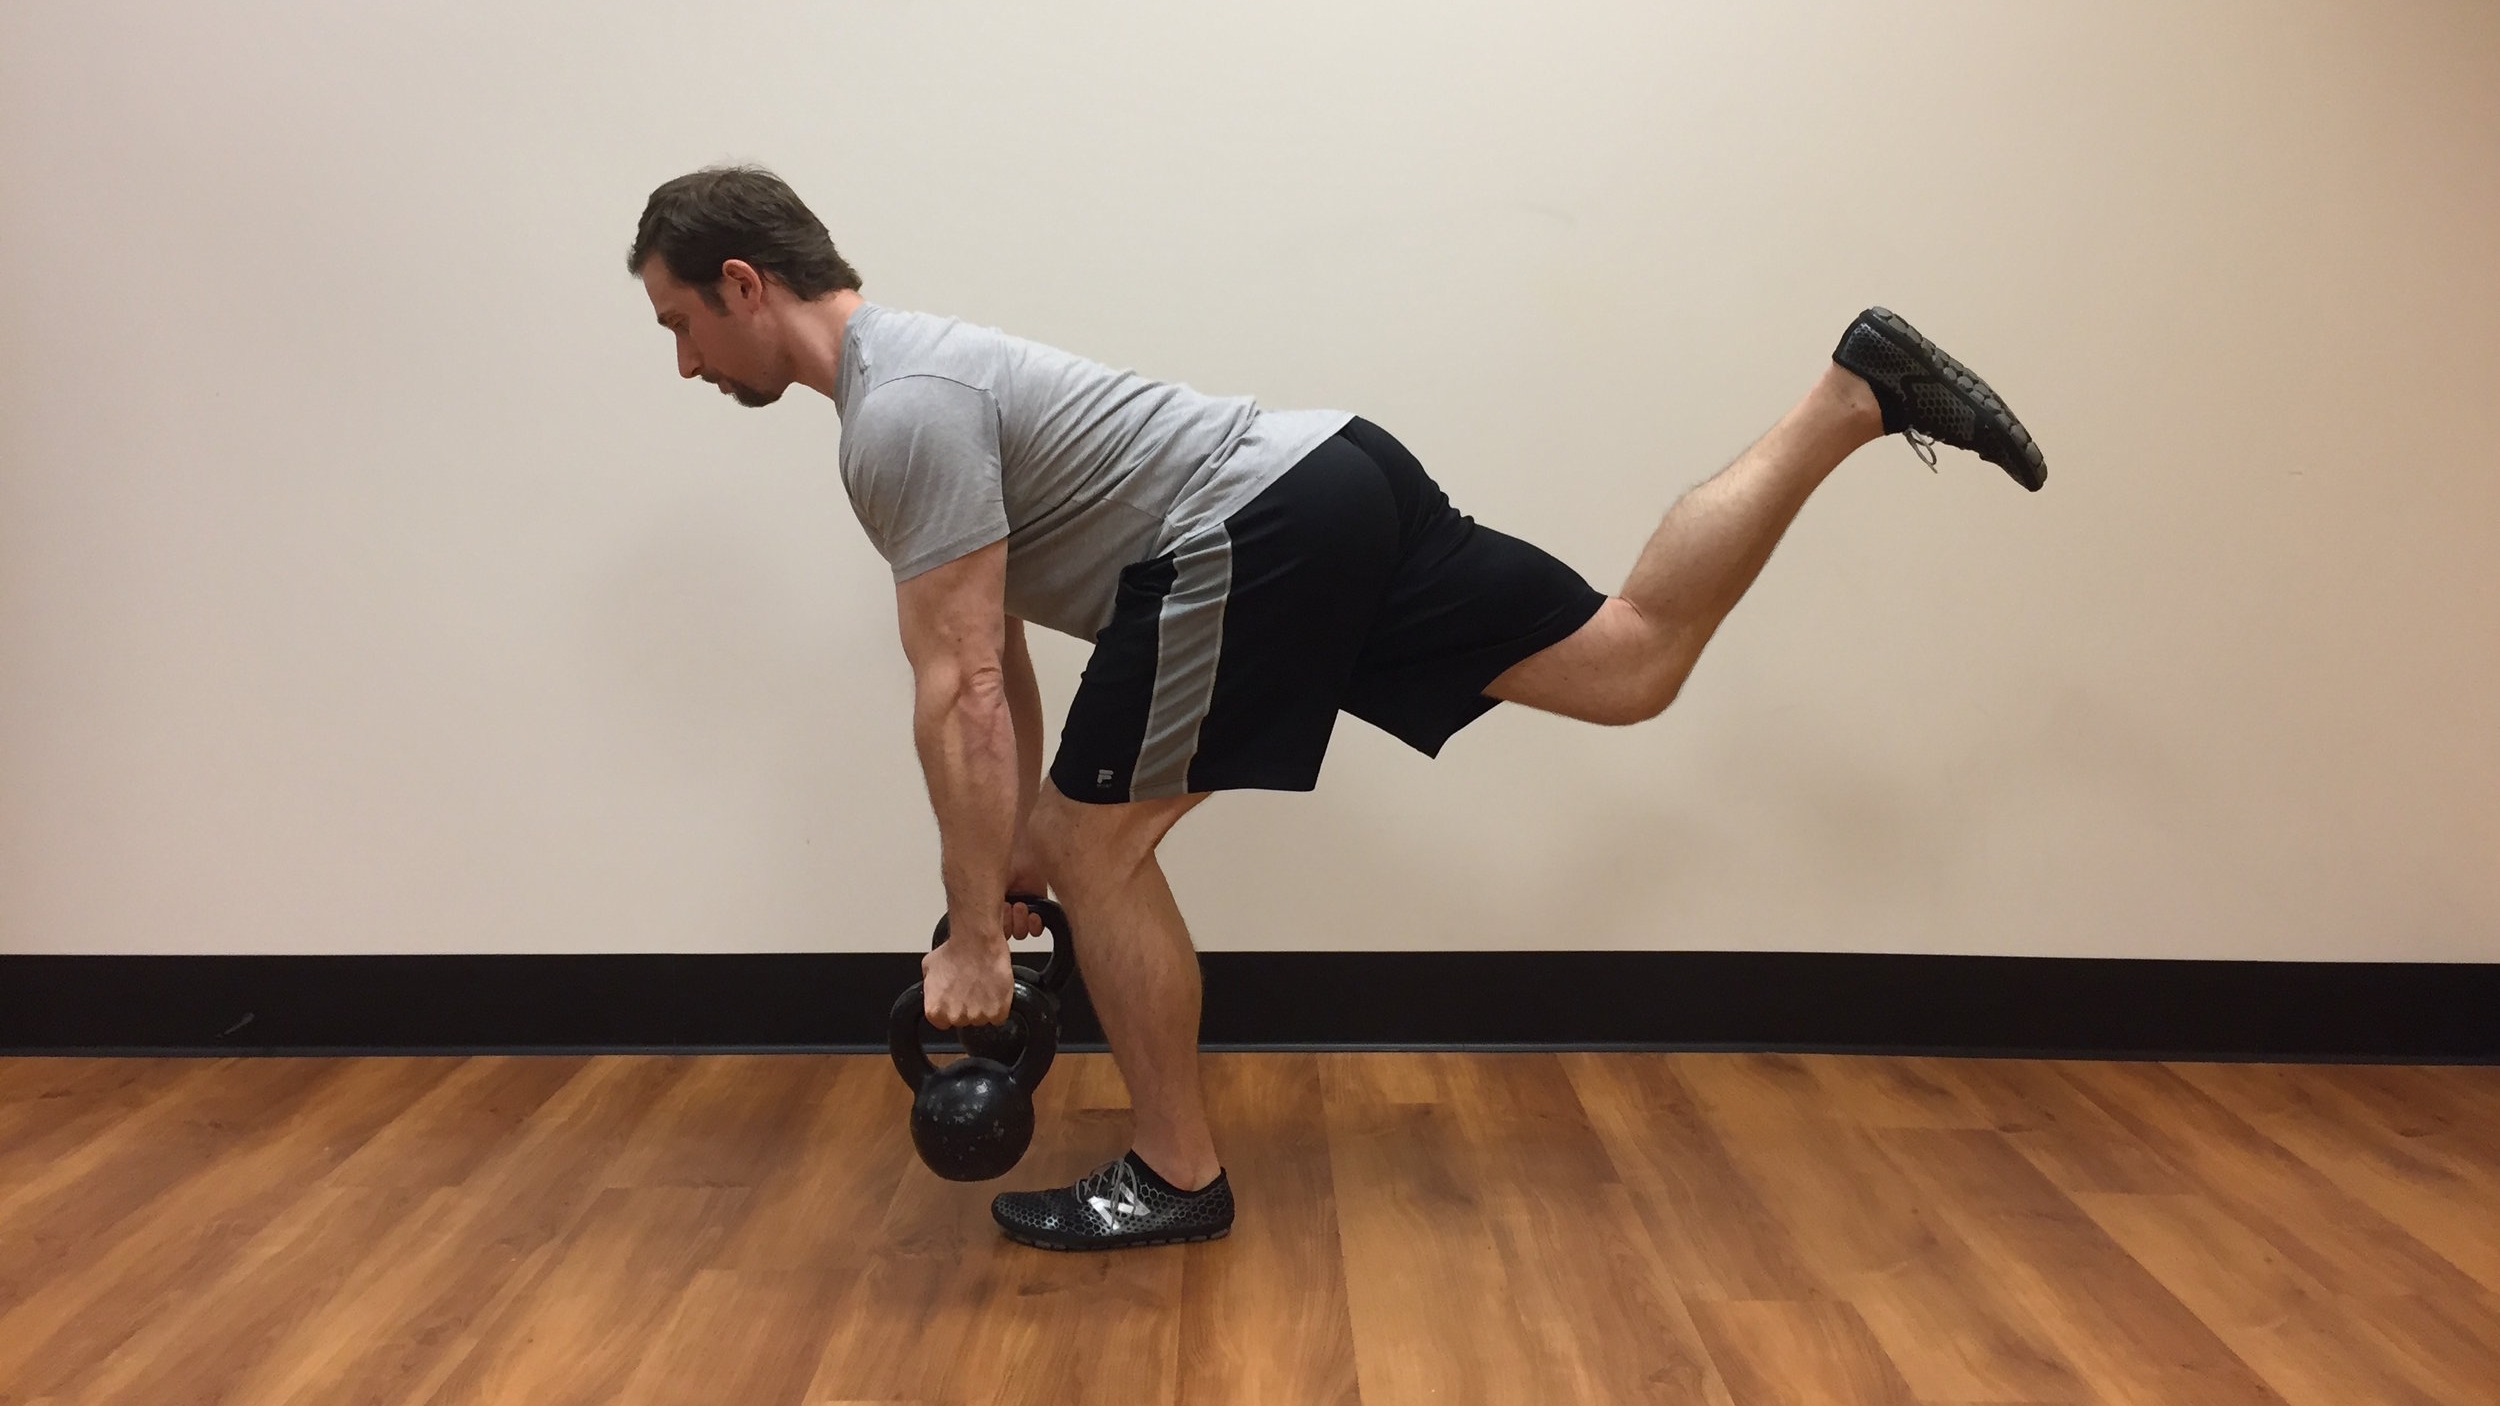 Proper Single Leg RDL with soft knee in support leg and 90 degree bend in elevated leg